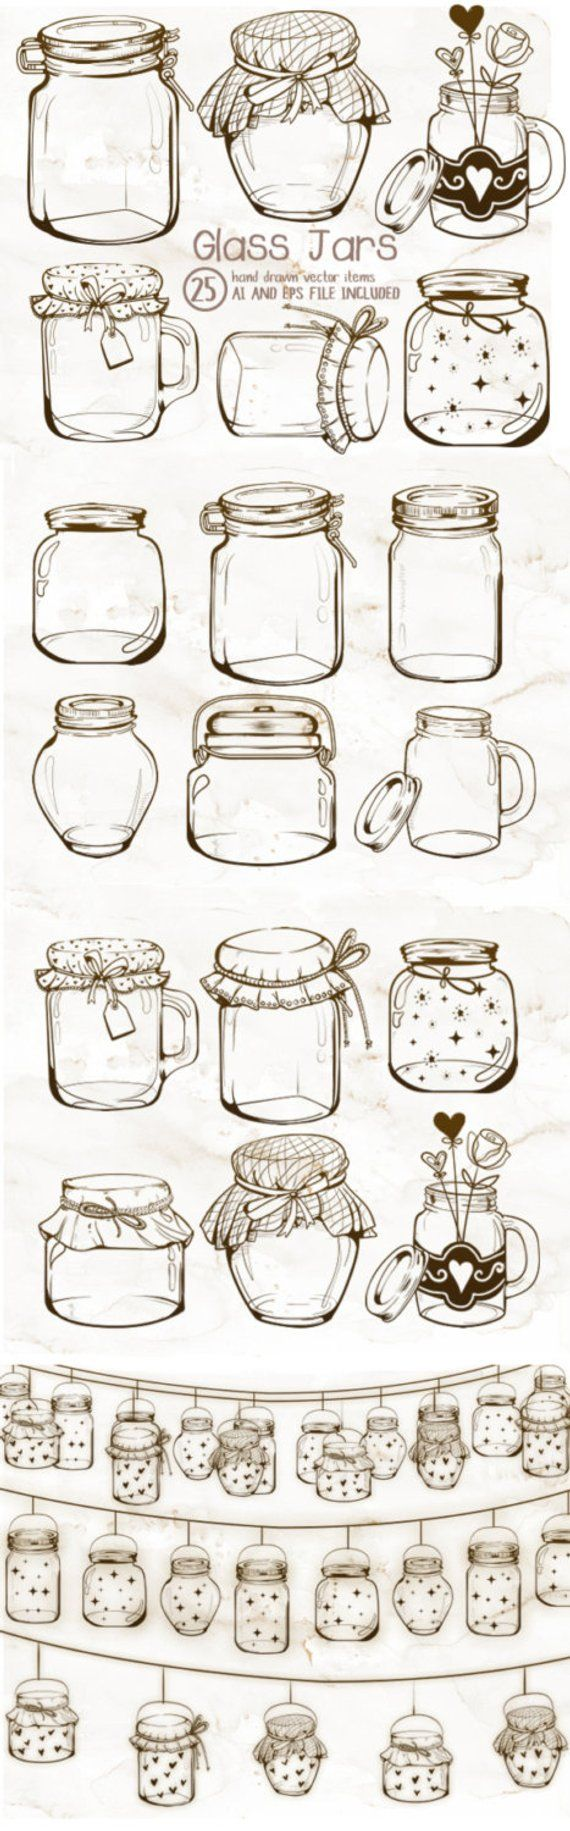 Glass Jars clipart, Mason Jars clipart, Vintage clipart, Jar crafts, Vintage Jars, Jar String Lights